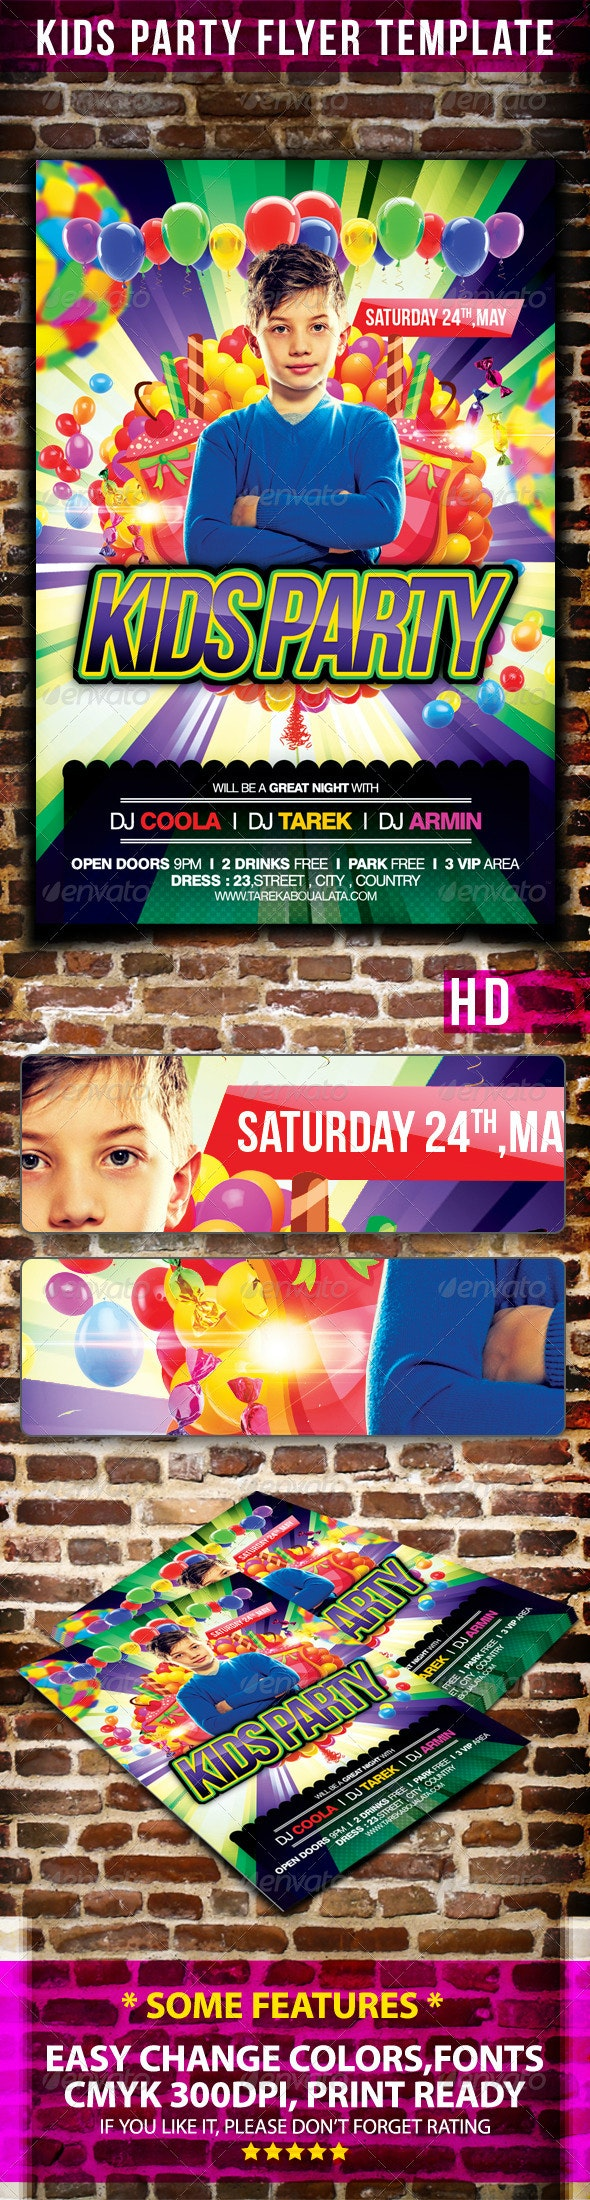 Kids Party Flyer Template v.2 - Clubs & Parties Events